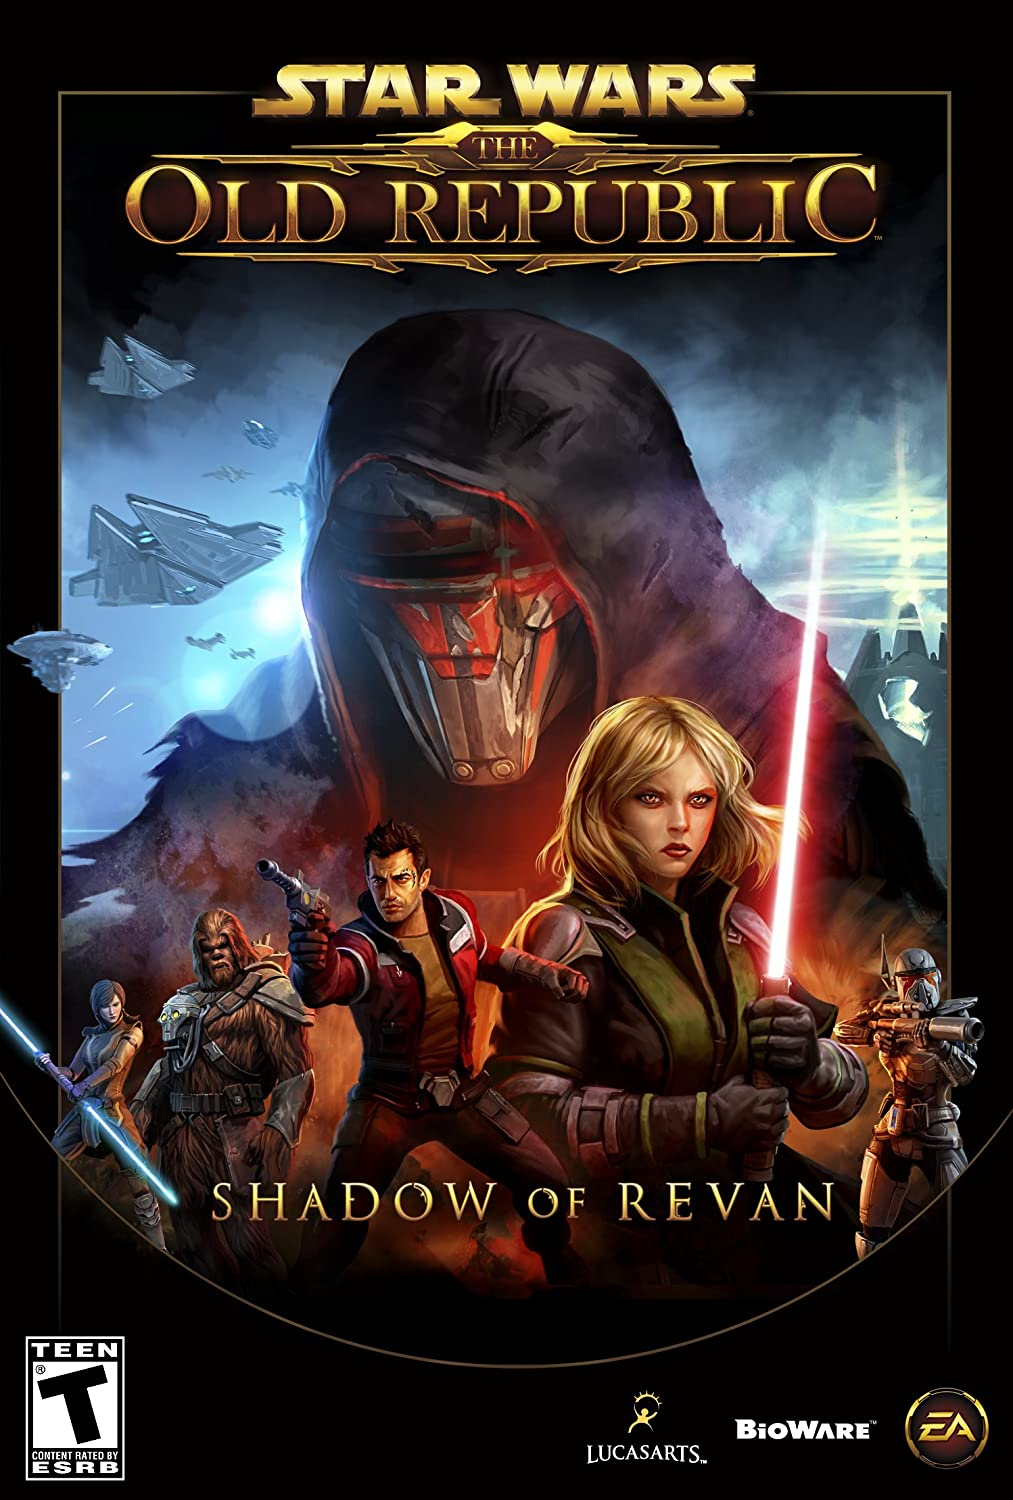 Amazon.com: Star Wars: The Old Republic - Shadow of Revan ...